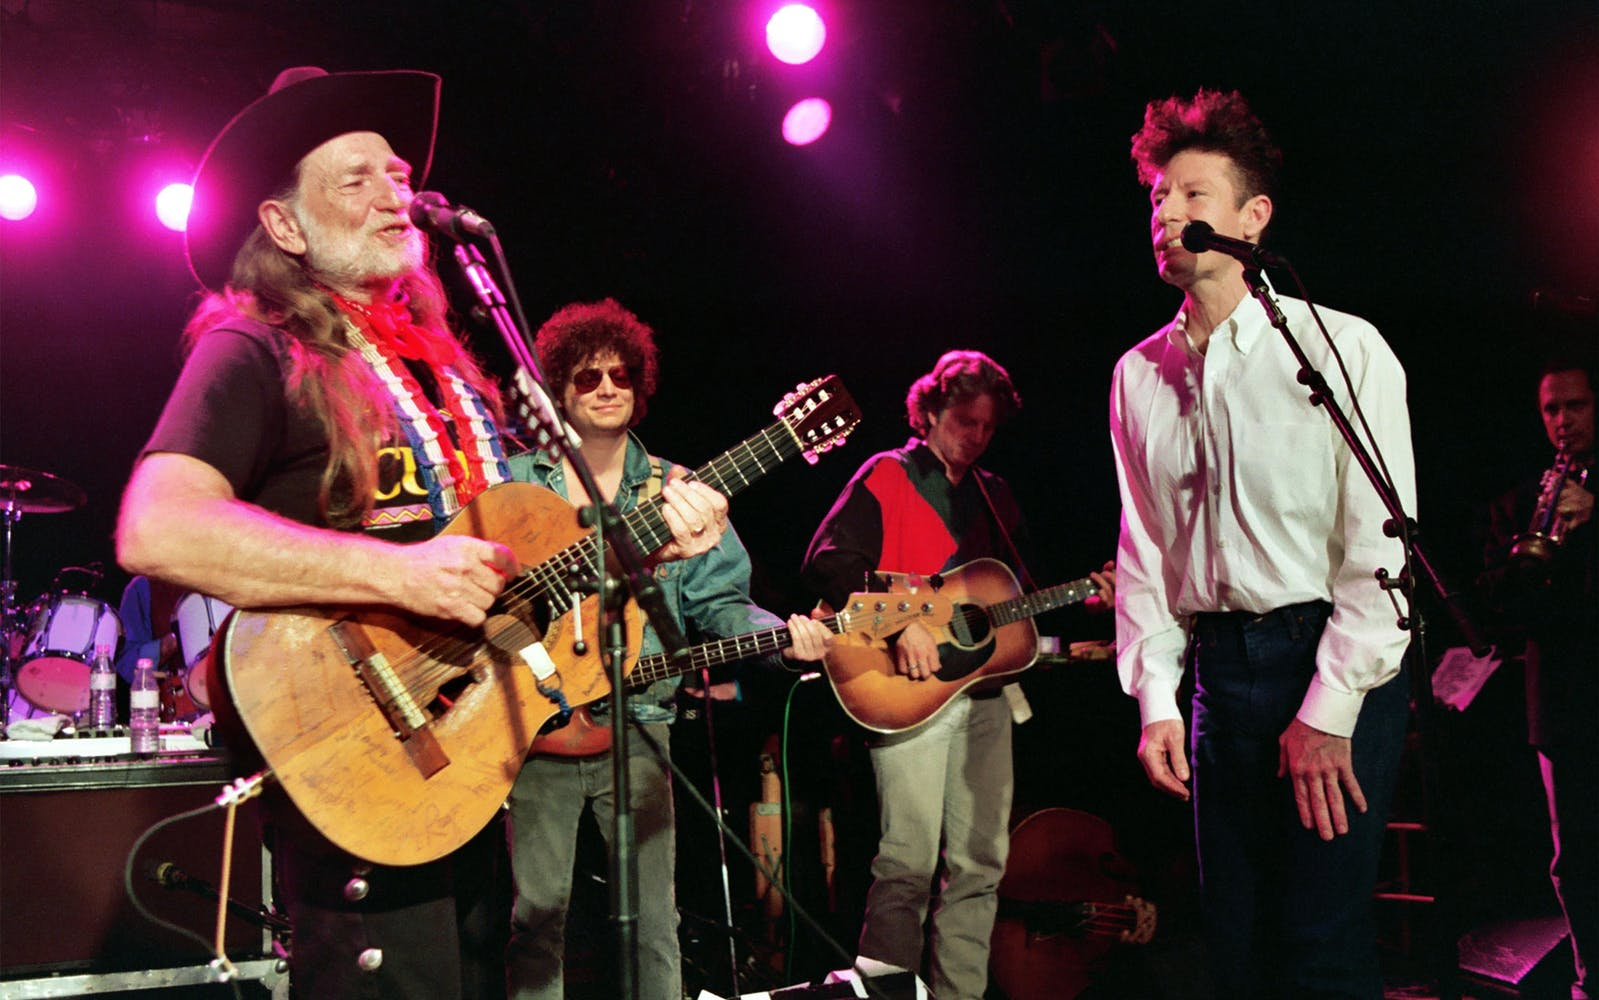 Willie Nelson, Don Was and Lyle Lovett during VH1's Willie Nelson and Friends at The Roxy in Hollywood, CA on July 27, 1993.